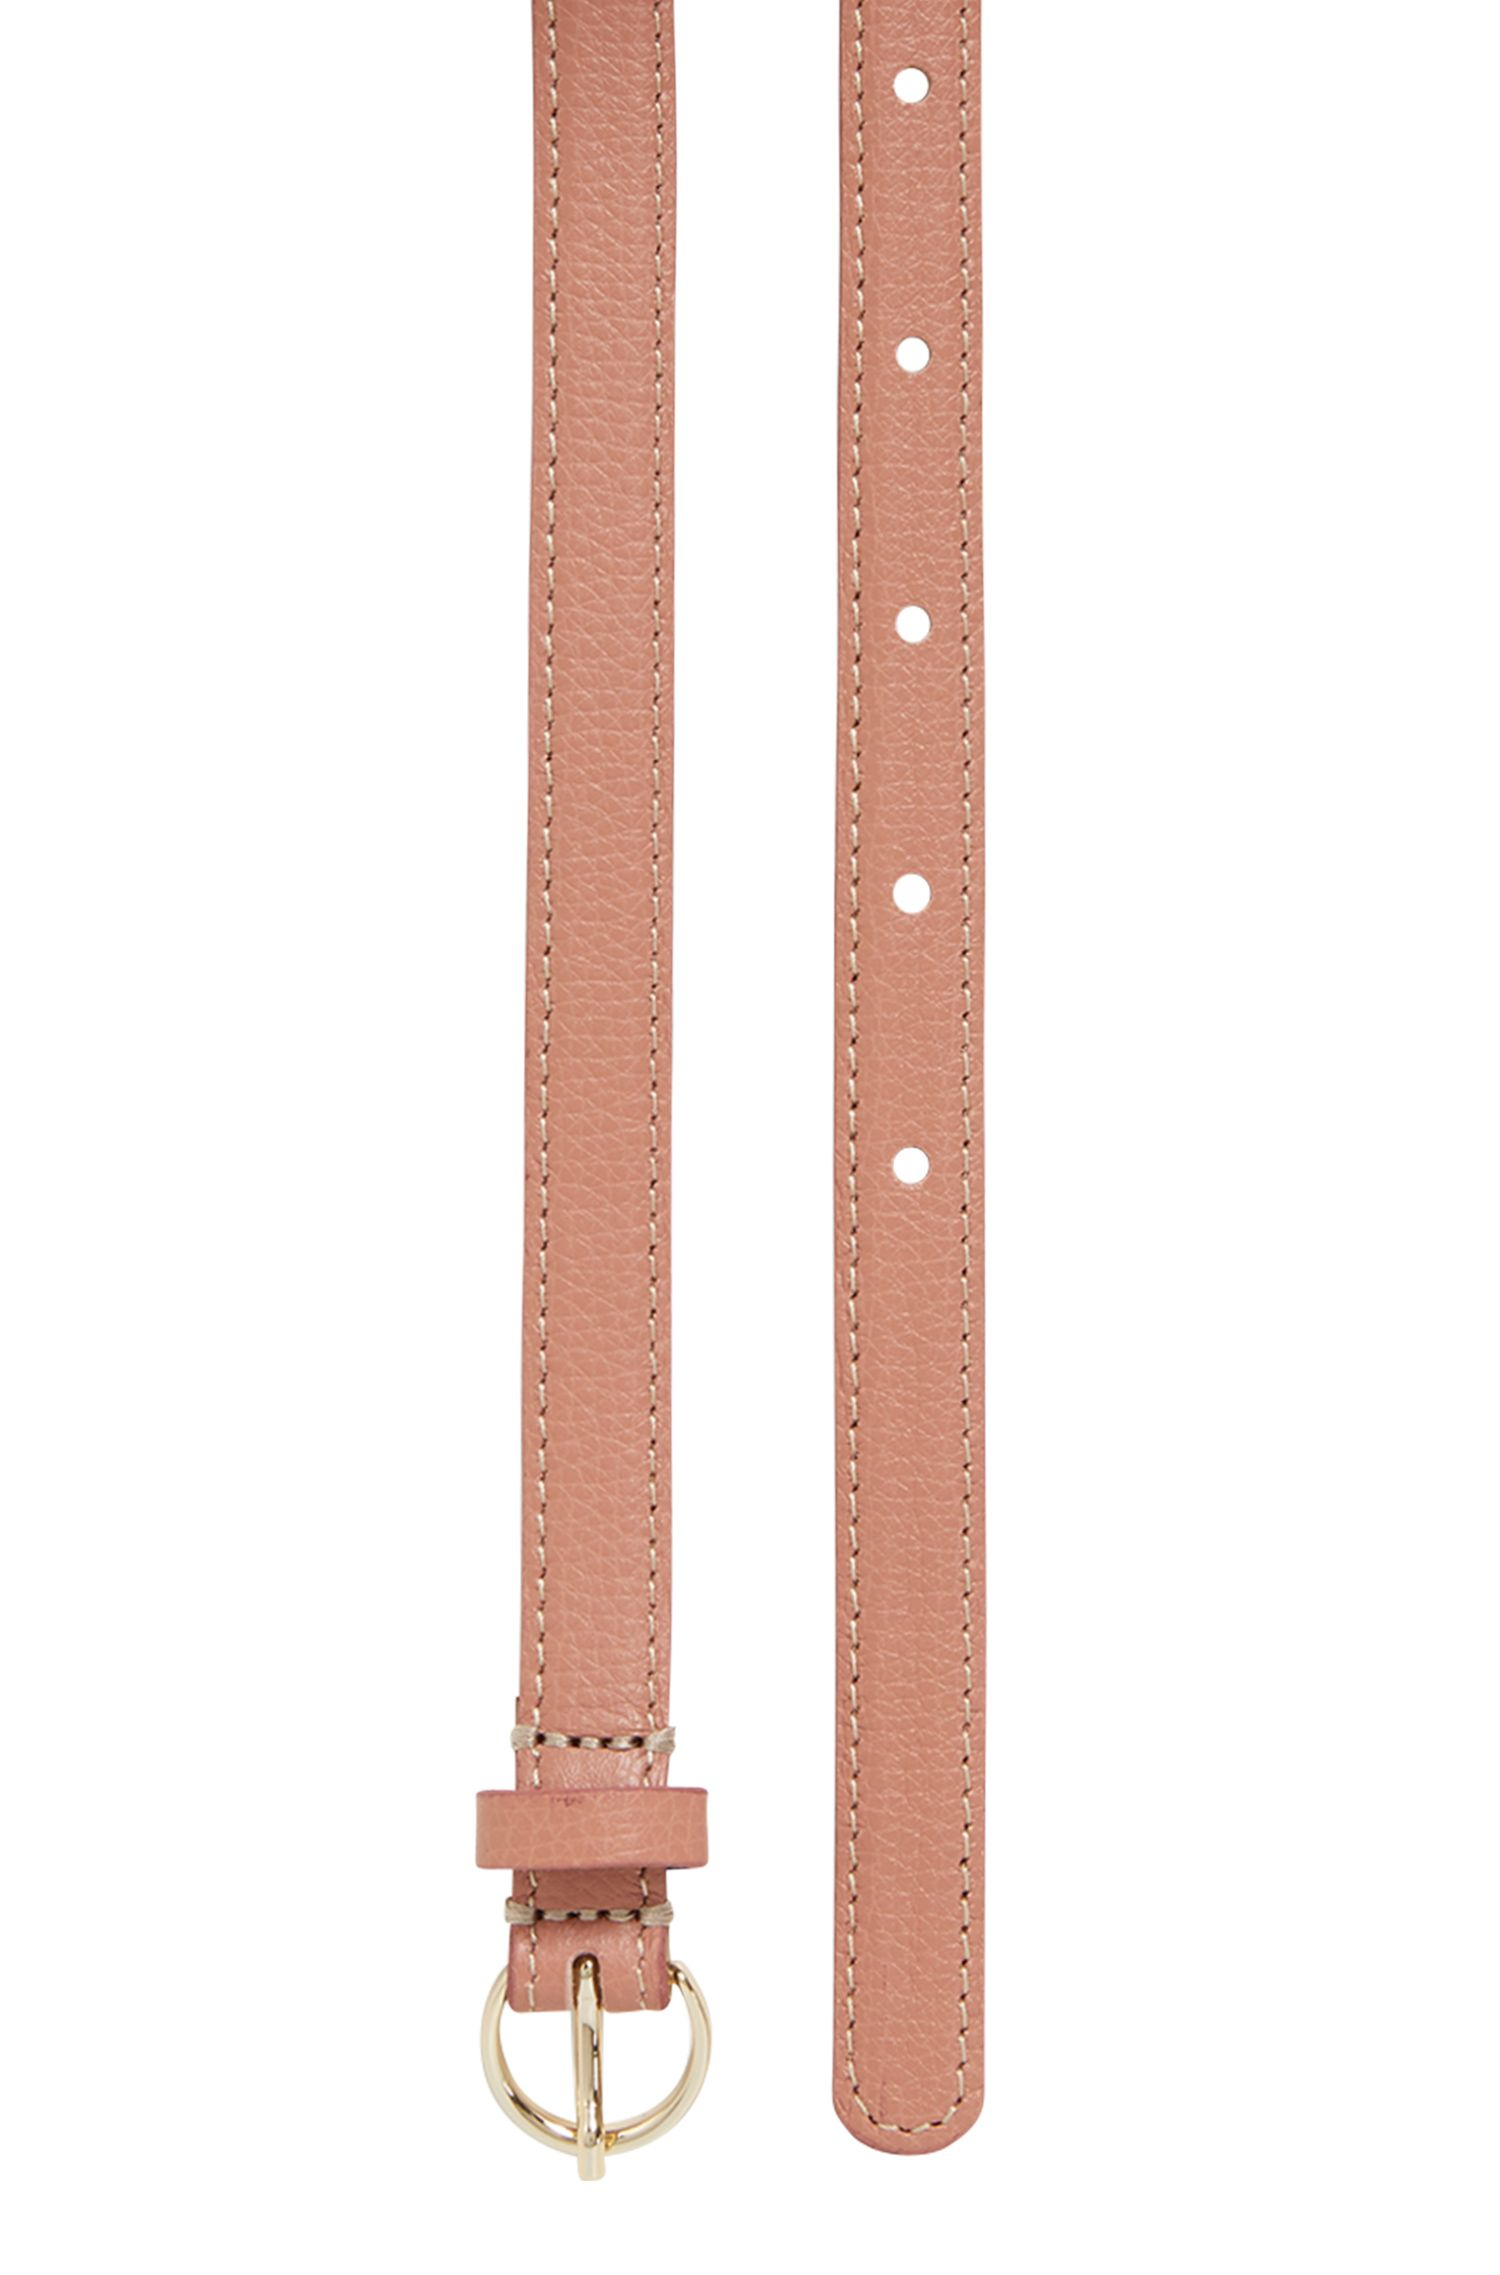 Slim belt in grained Italian leather